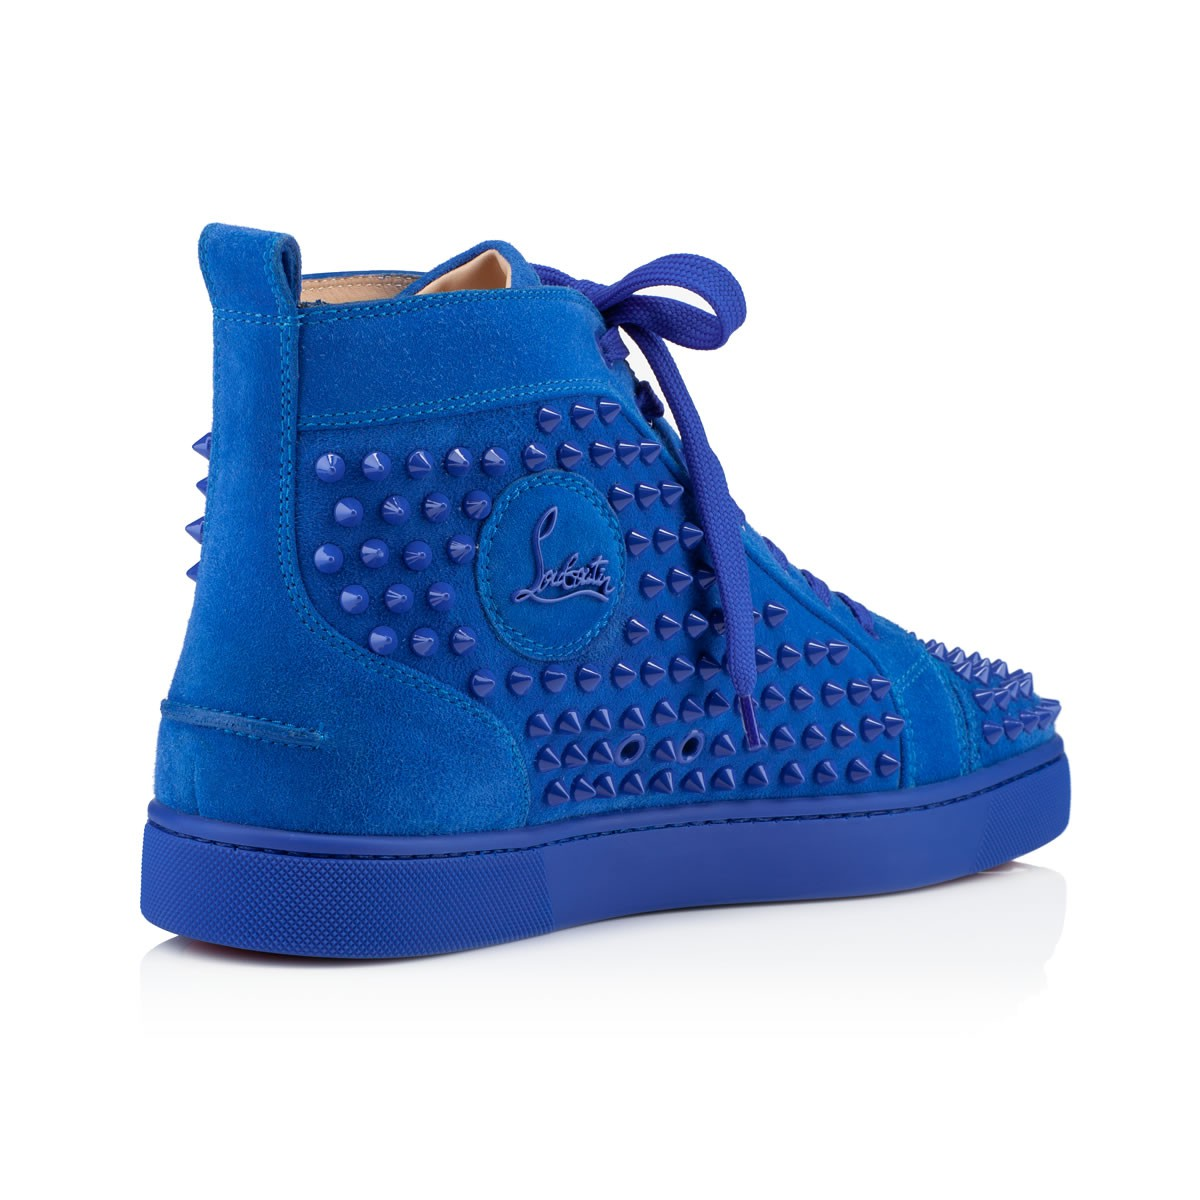 Lyst - Christian Louboutin Men s Louis Flat Sneakers in Blue for Men